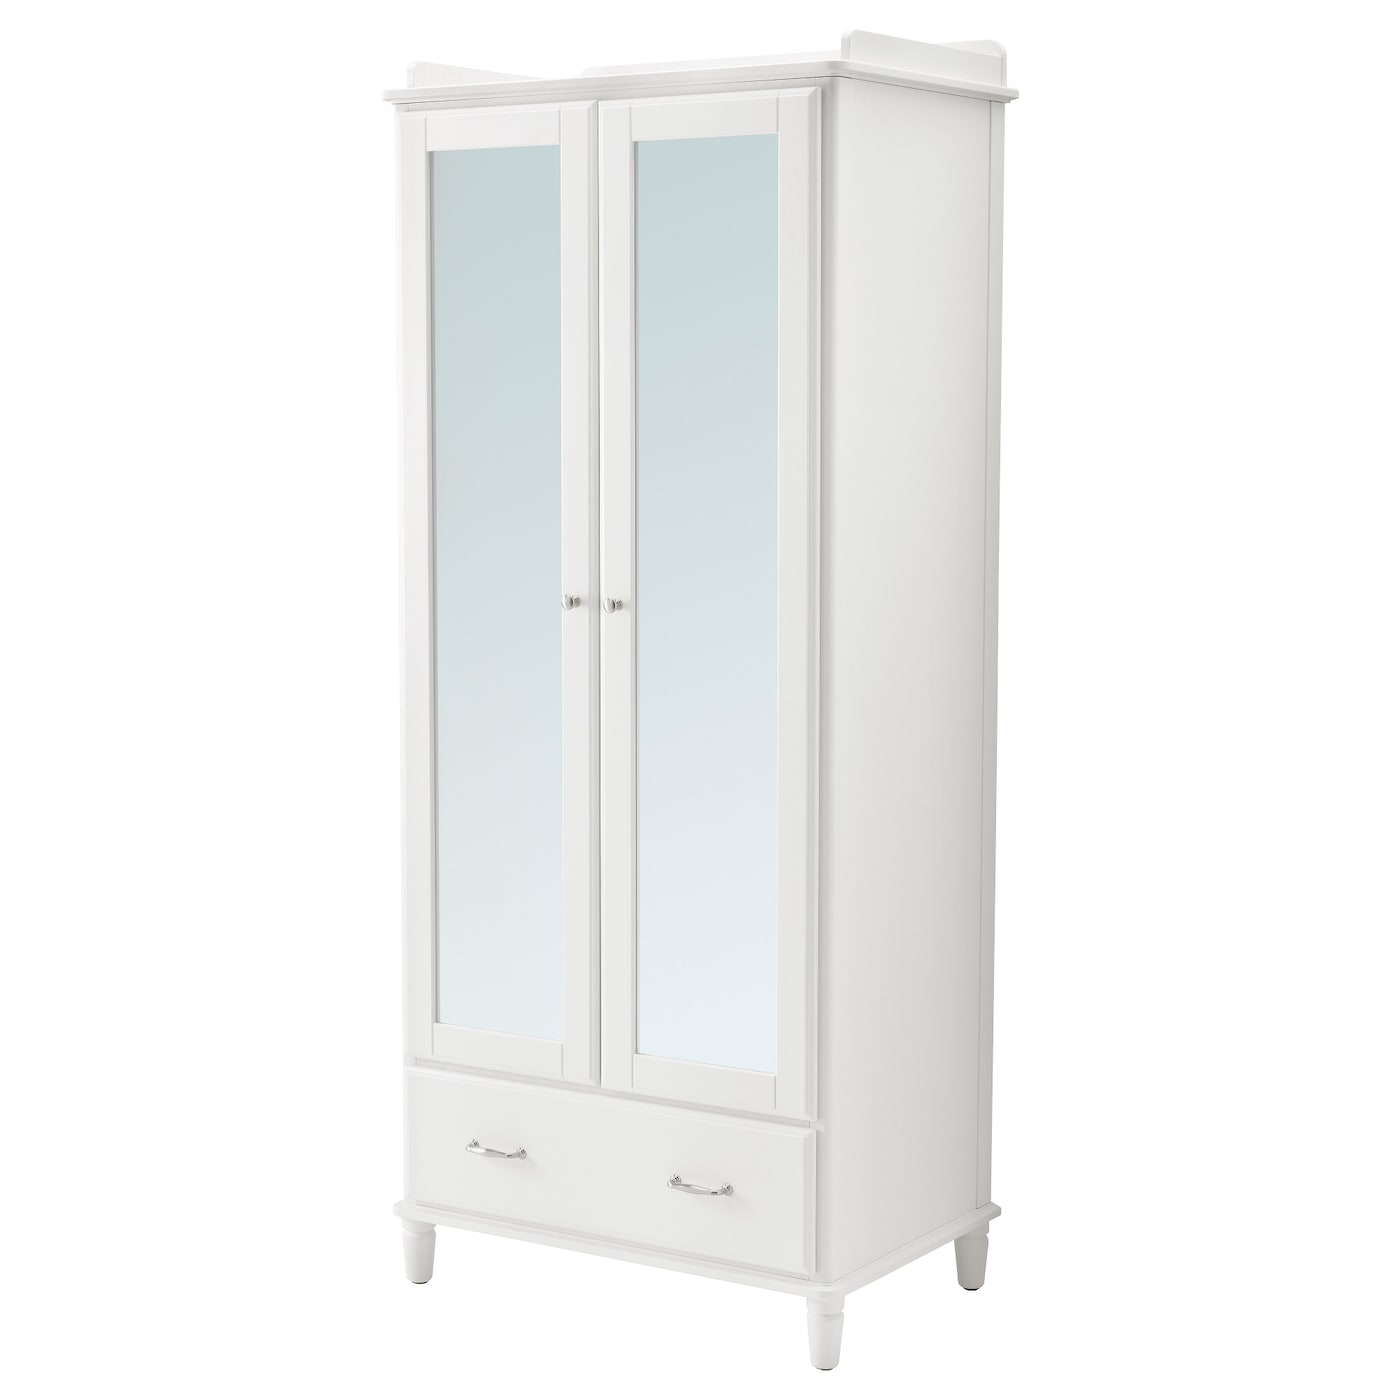 tyssedal armoire blanc miroir 88x58x208 cm ikea. Black Bedroom Furniture Sets. Home Design Ideas